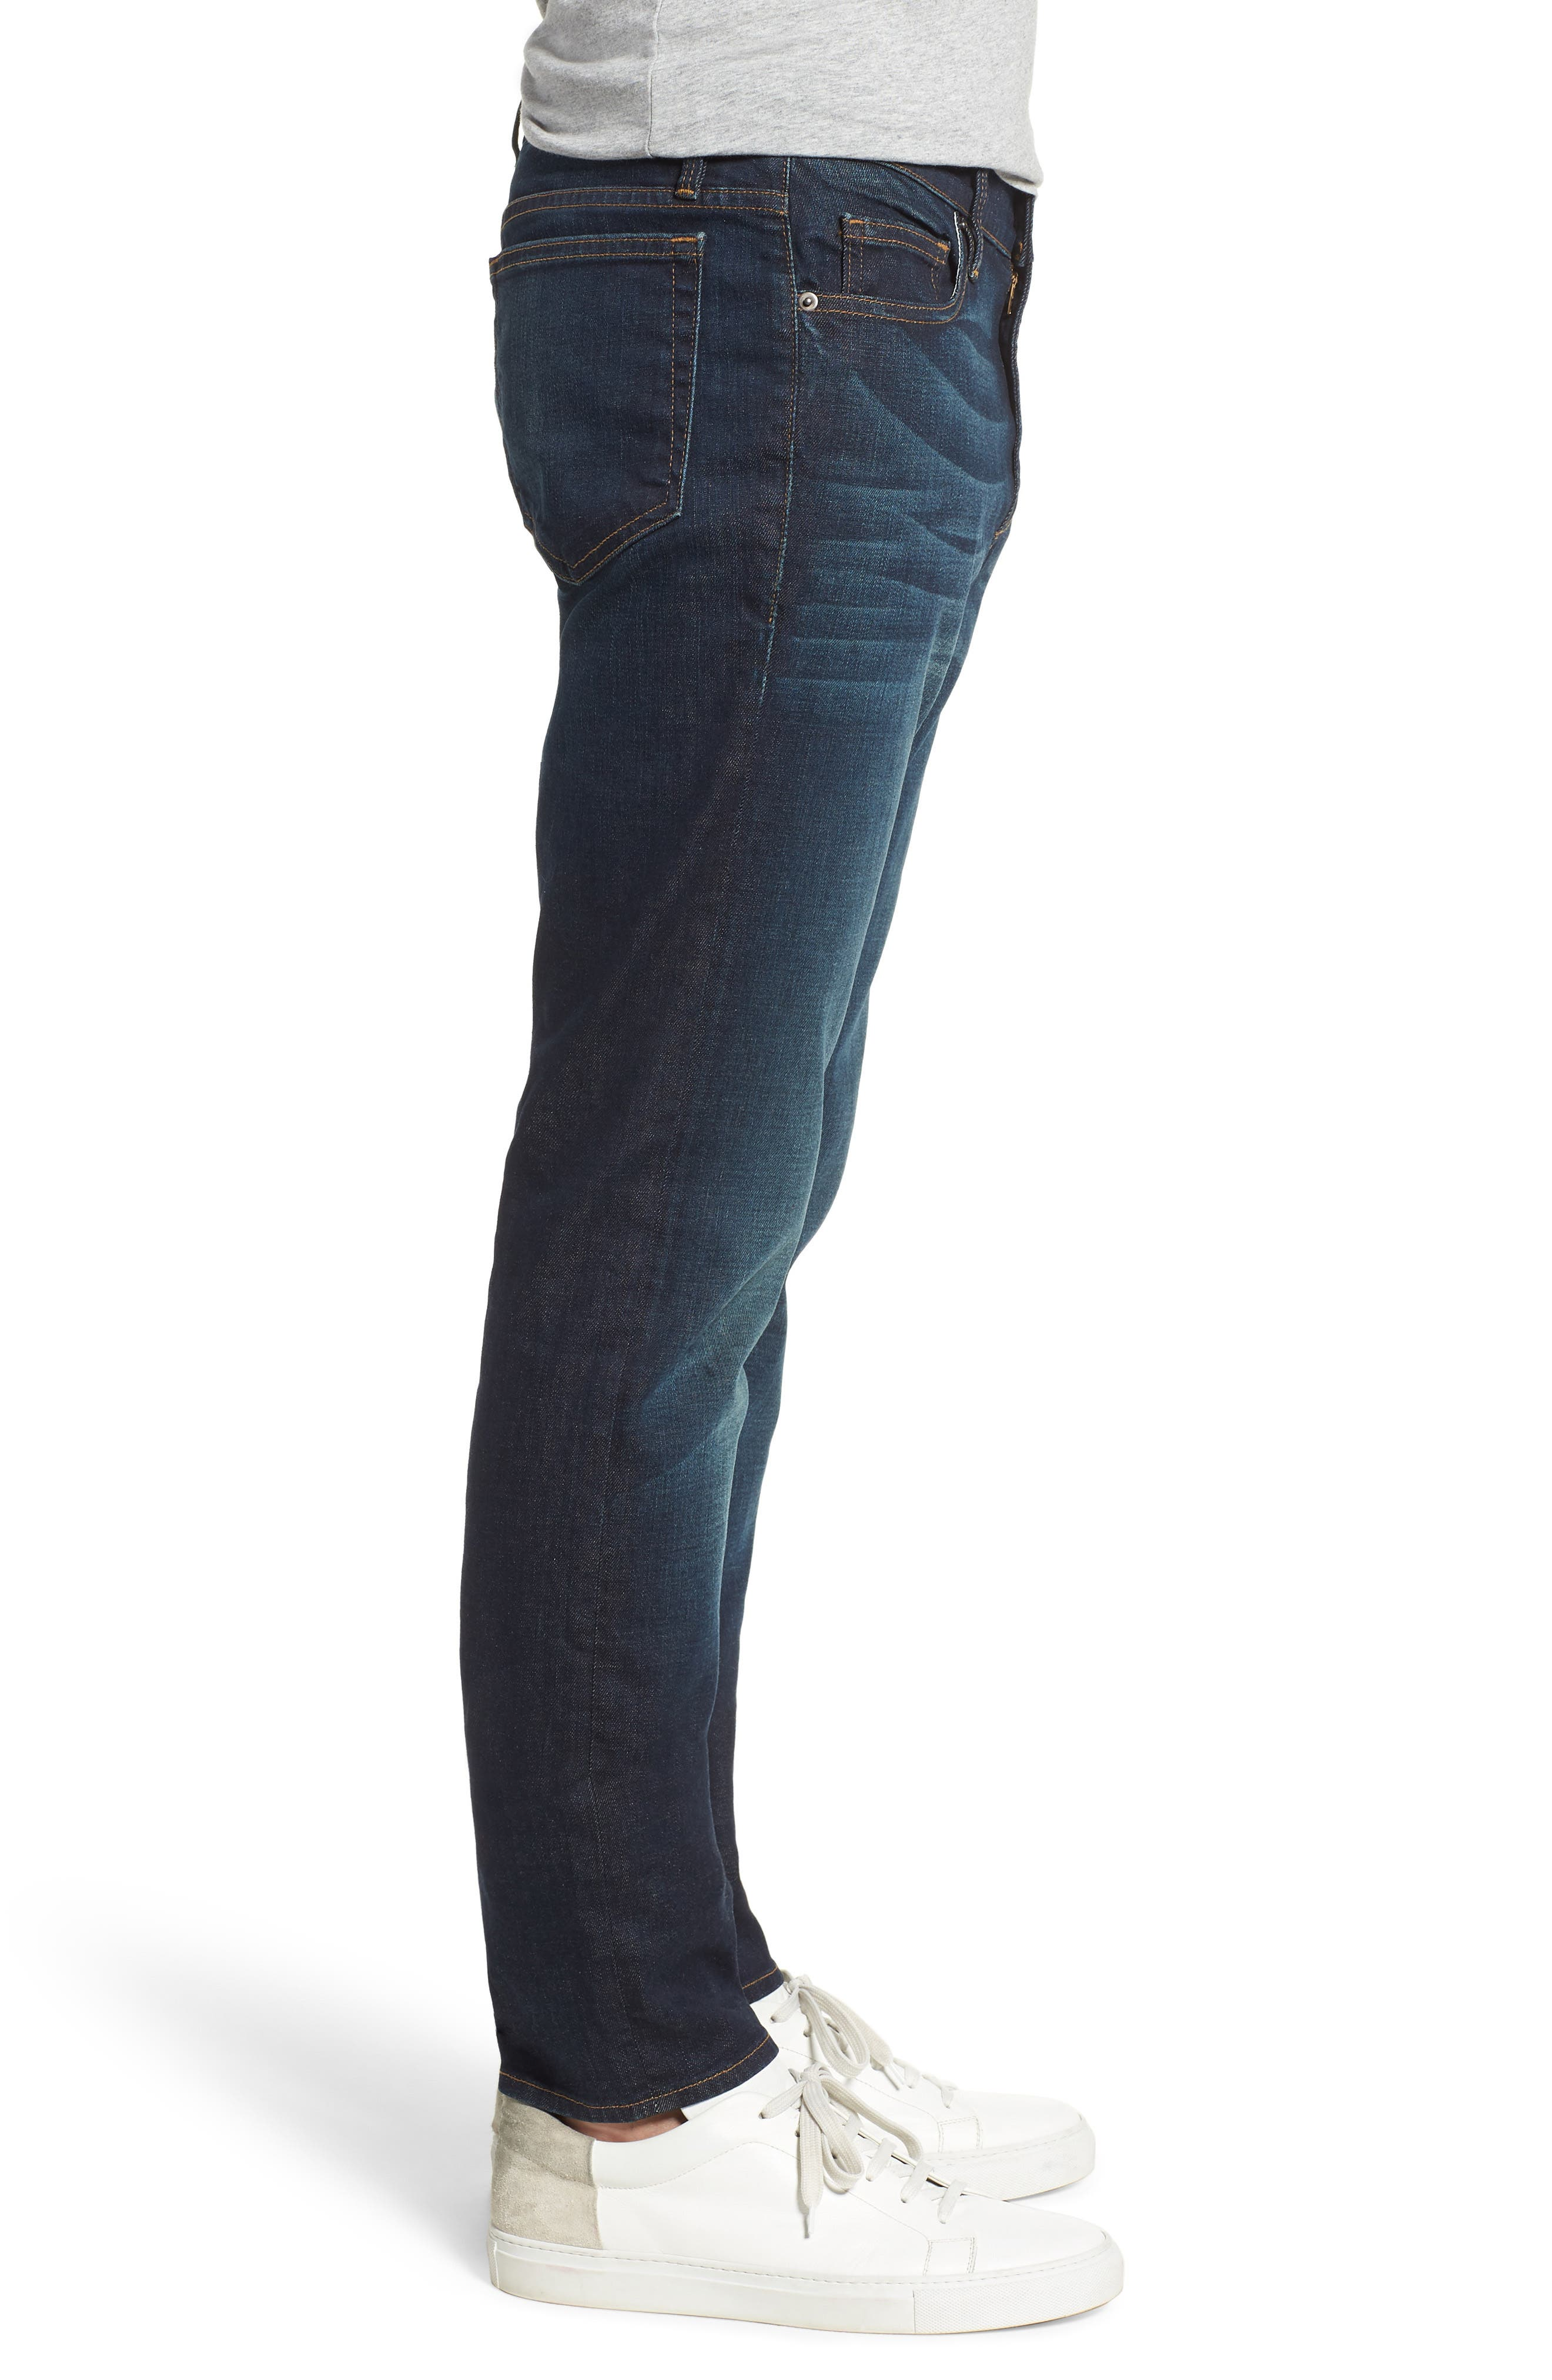 L'Homme Skinny Fit Jeans,                             Alternate thumbnail 4, color,